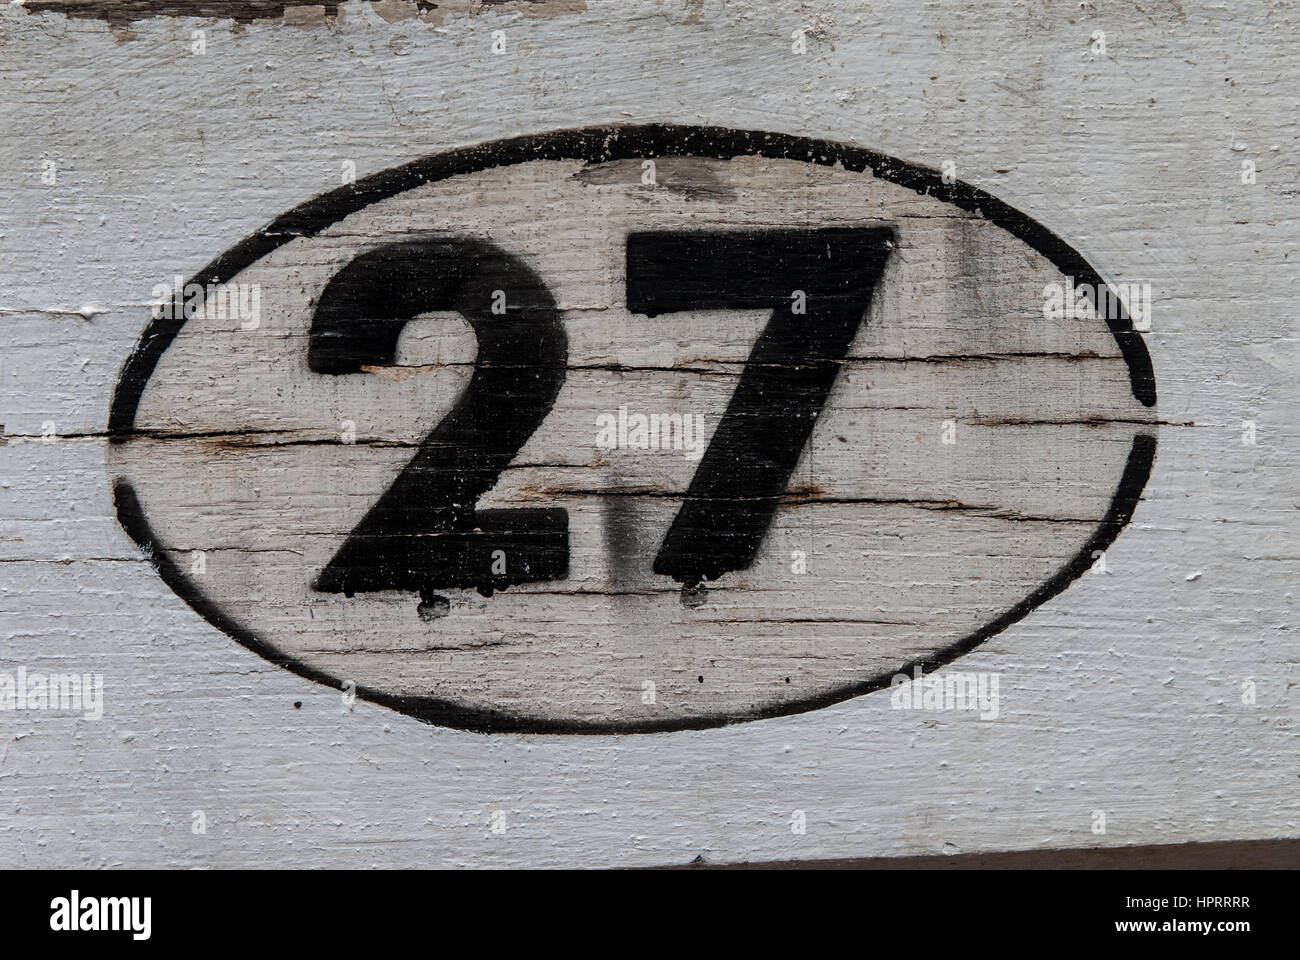 The number 27 black on white in an oval border painted against a white wooden background. - Stock Image